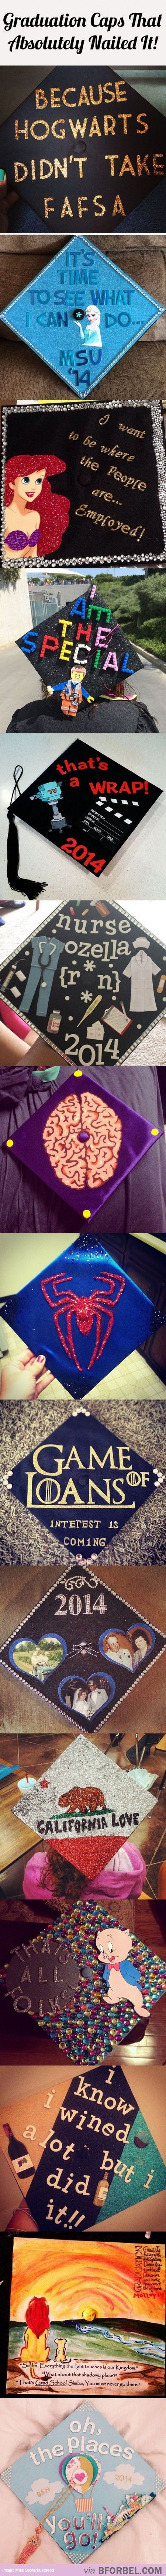 15 Awesome Graduation Caps That Just Nail The Graduation Spirit…